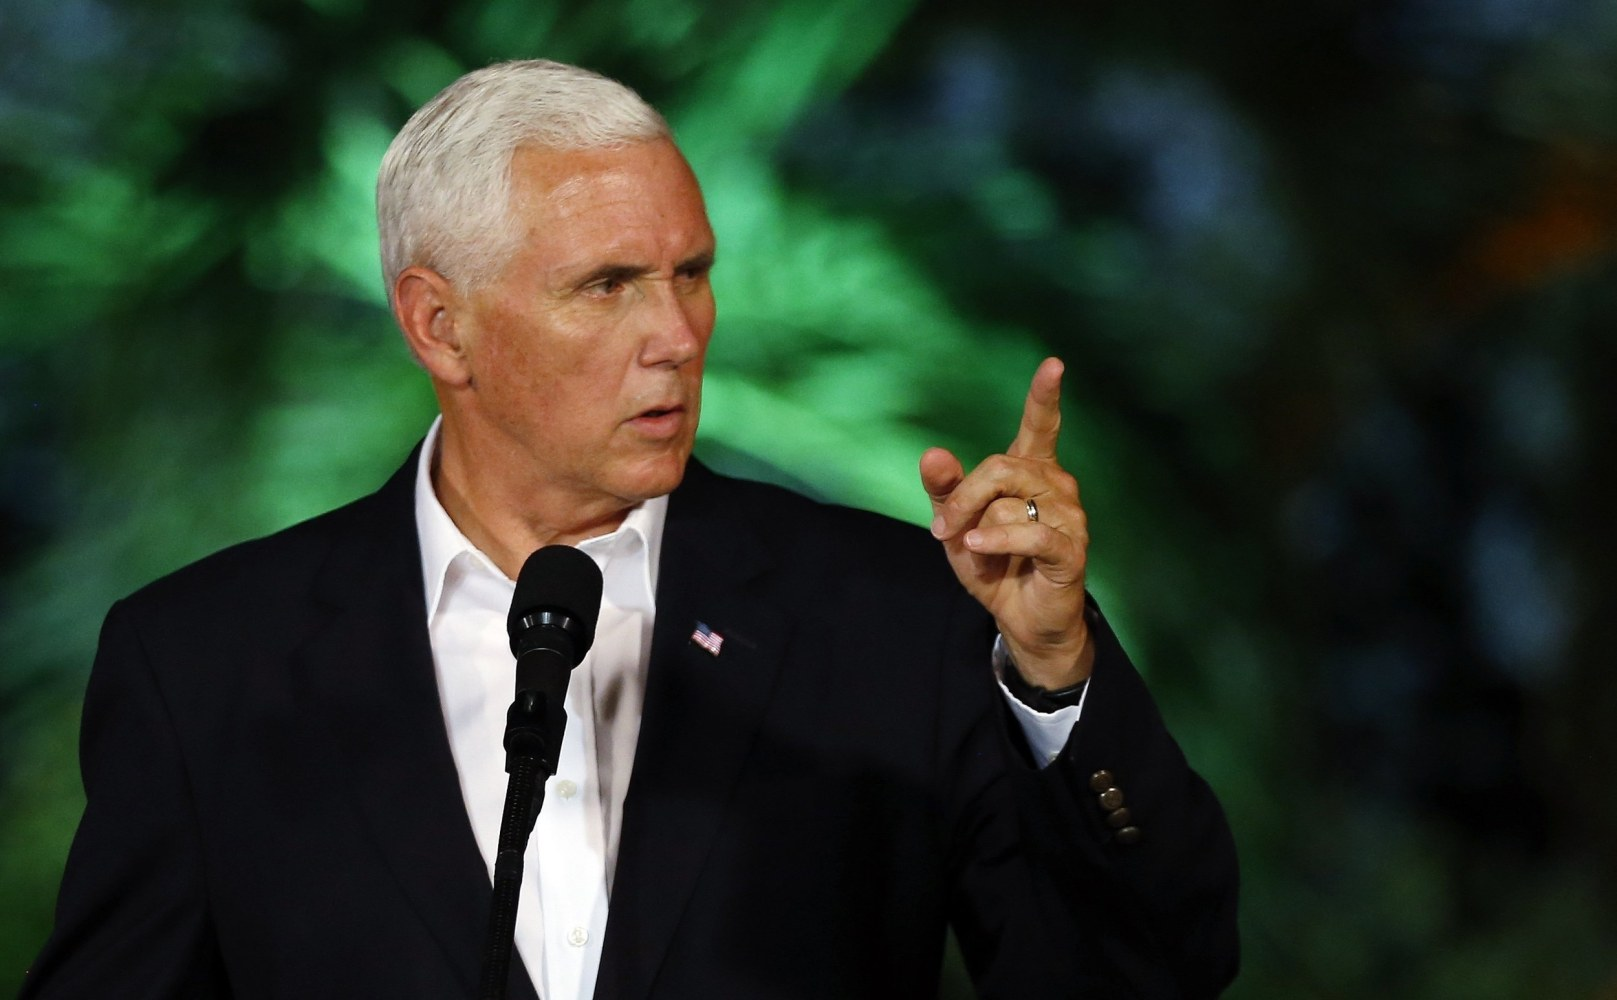 Soldiers reassigned after bringing women to Panama hotel during Mike Pence detail